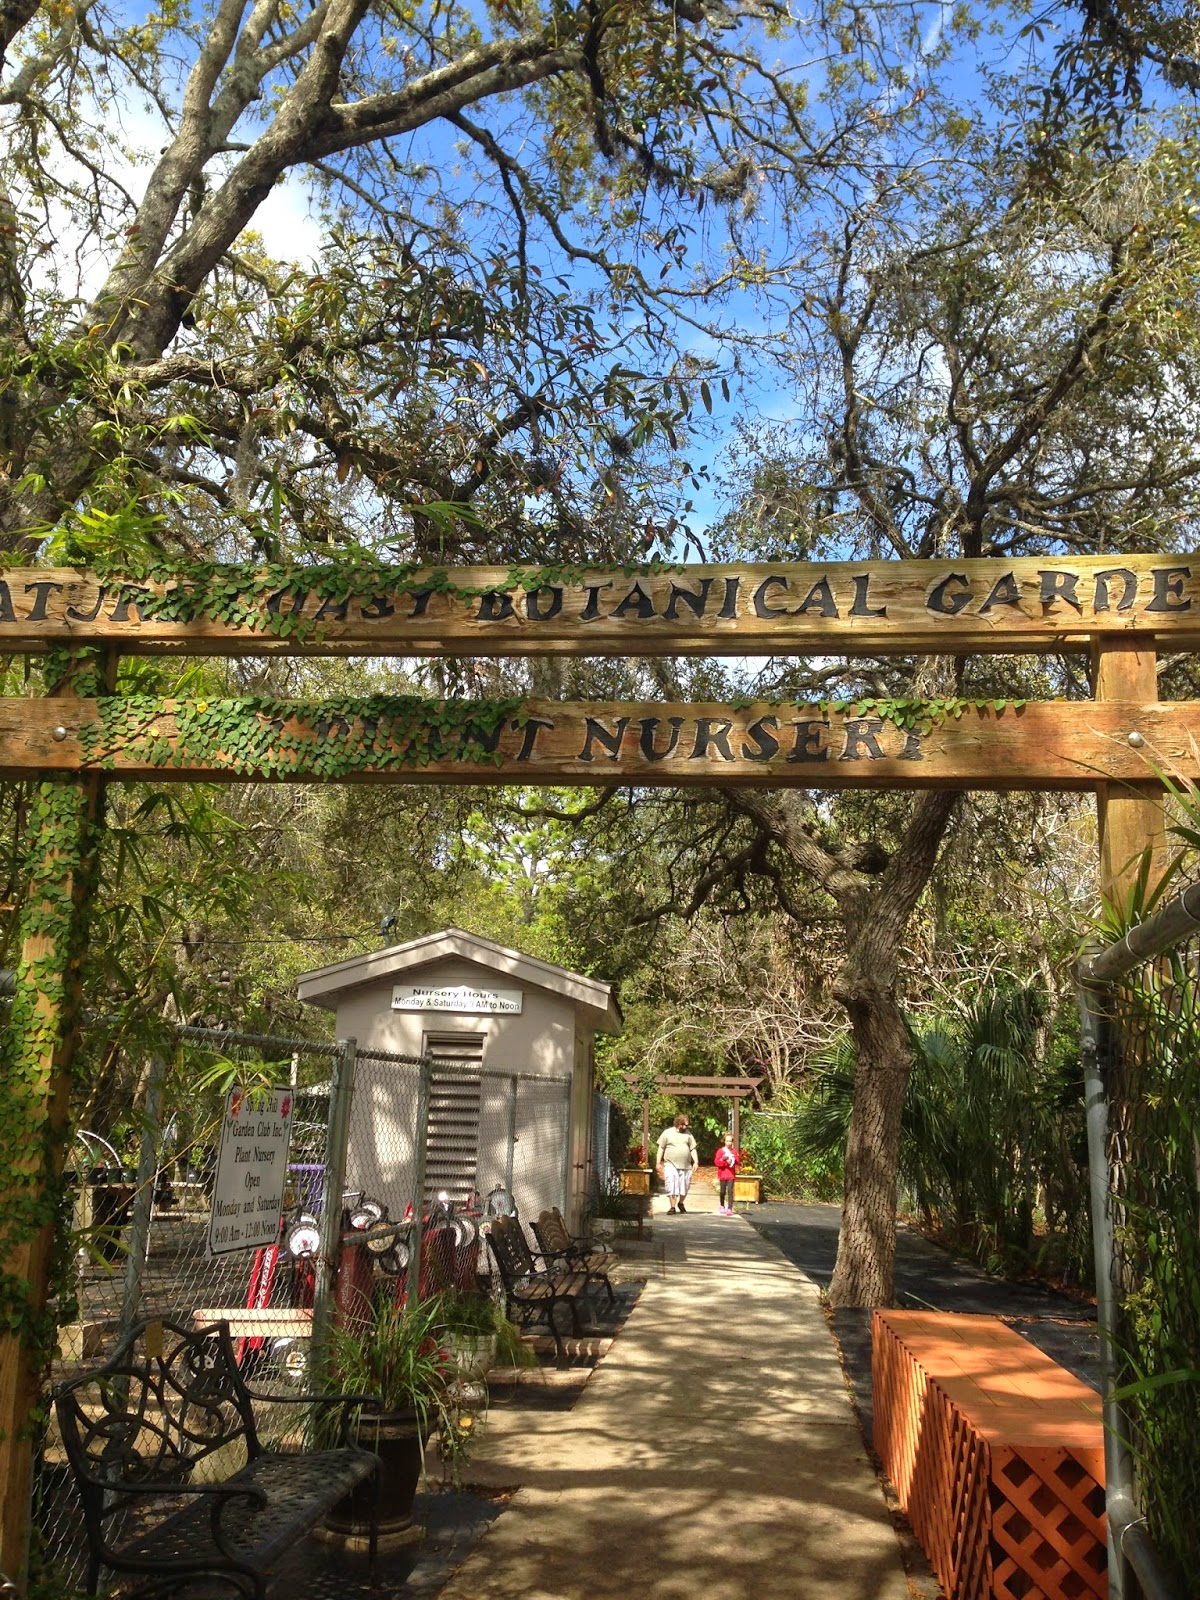 The Botanical Gardens in Spring Hill Florida